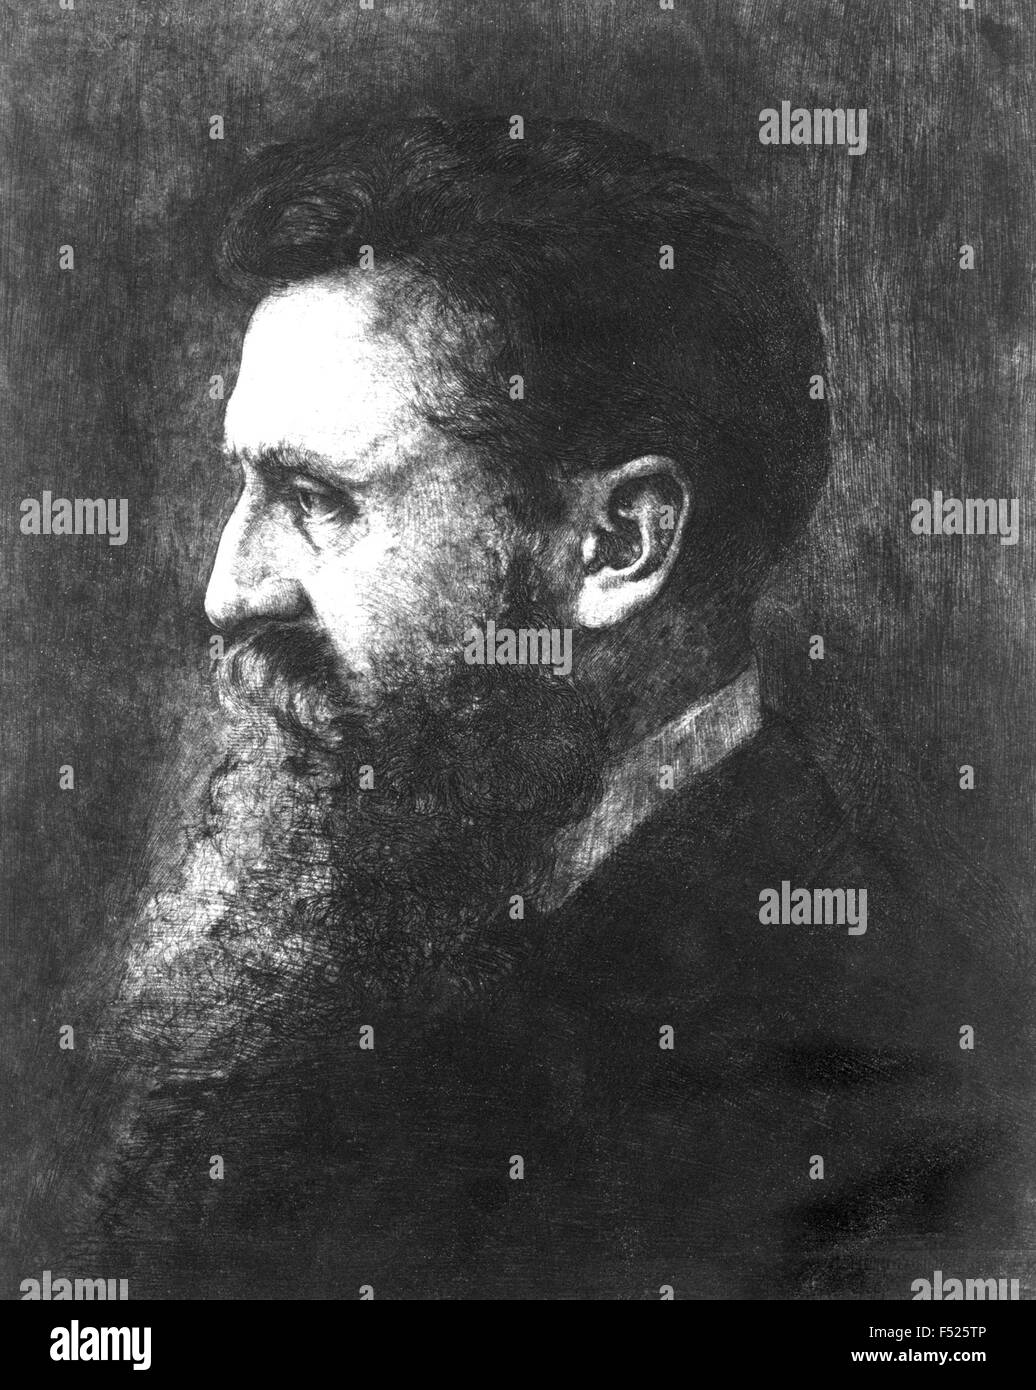 THEODOR HERZL (1860-1904)  Austro-Hungarian journalist who promoted the establishment of a Jewish state in Palestine. - Stock Image